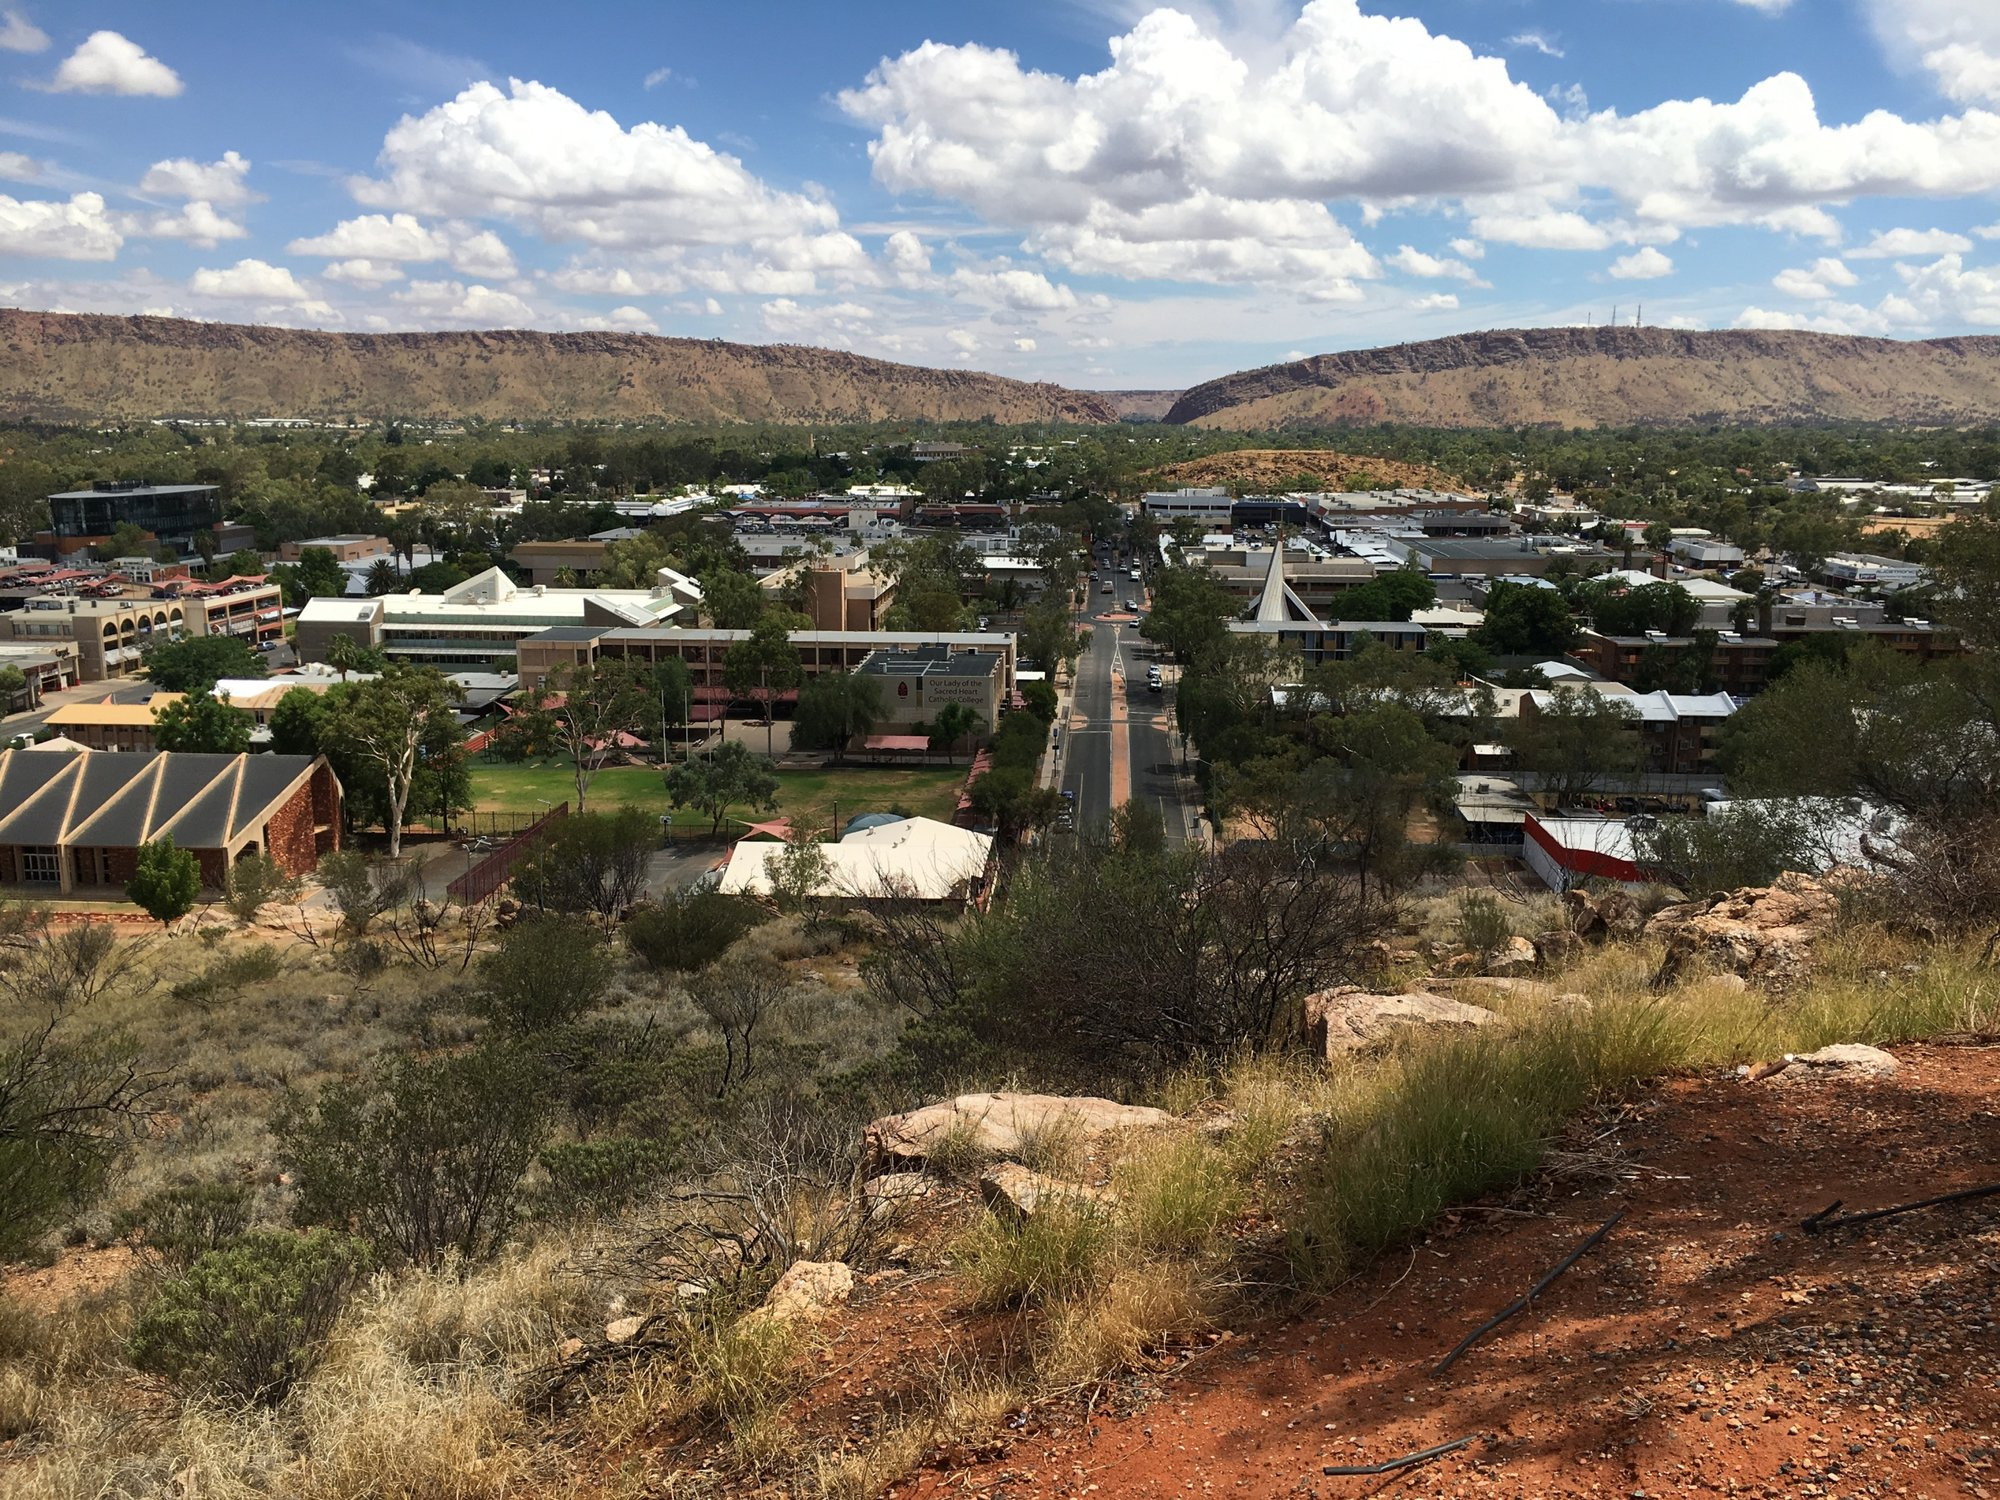 a vista over Alice Springs seen from a lookout point